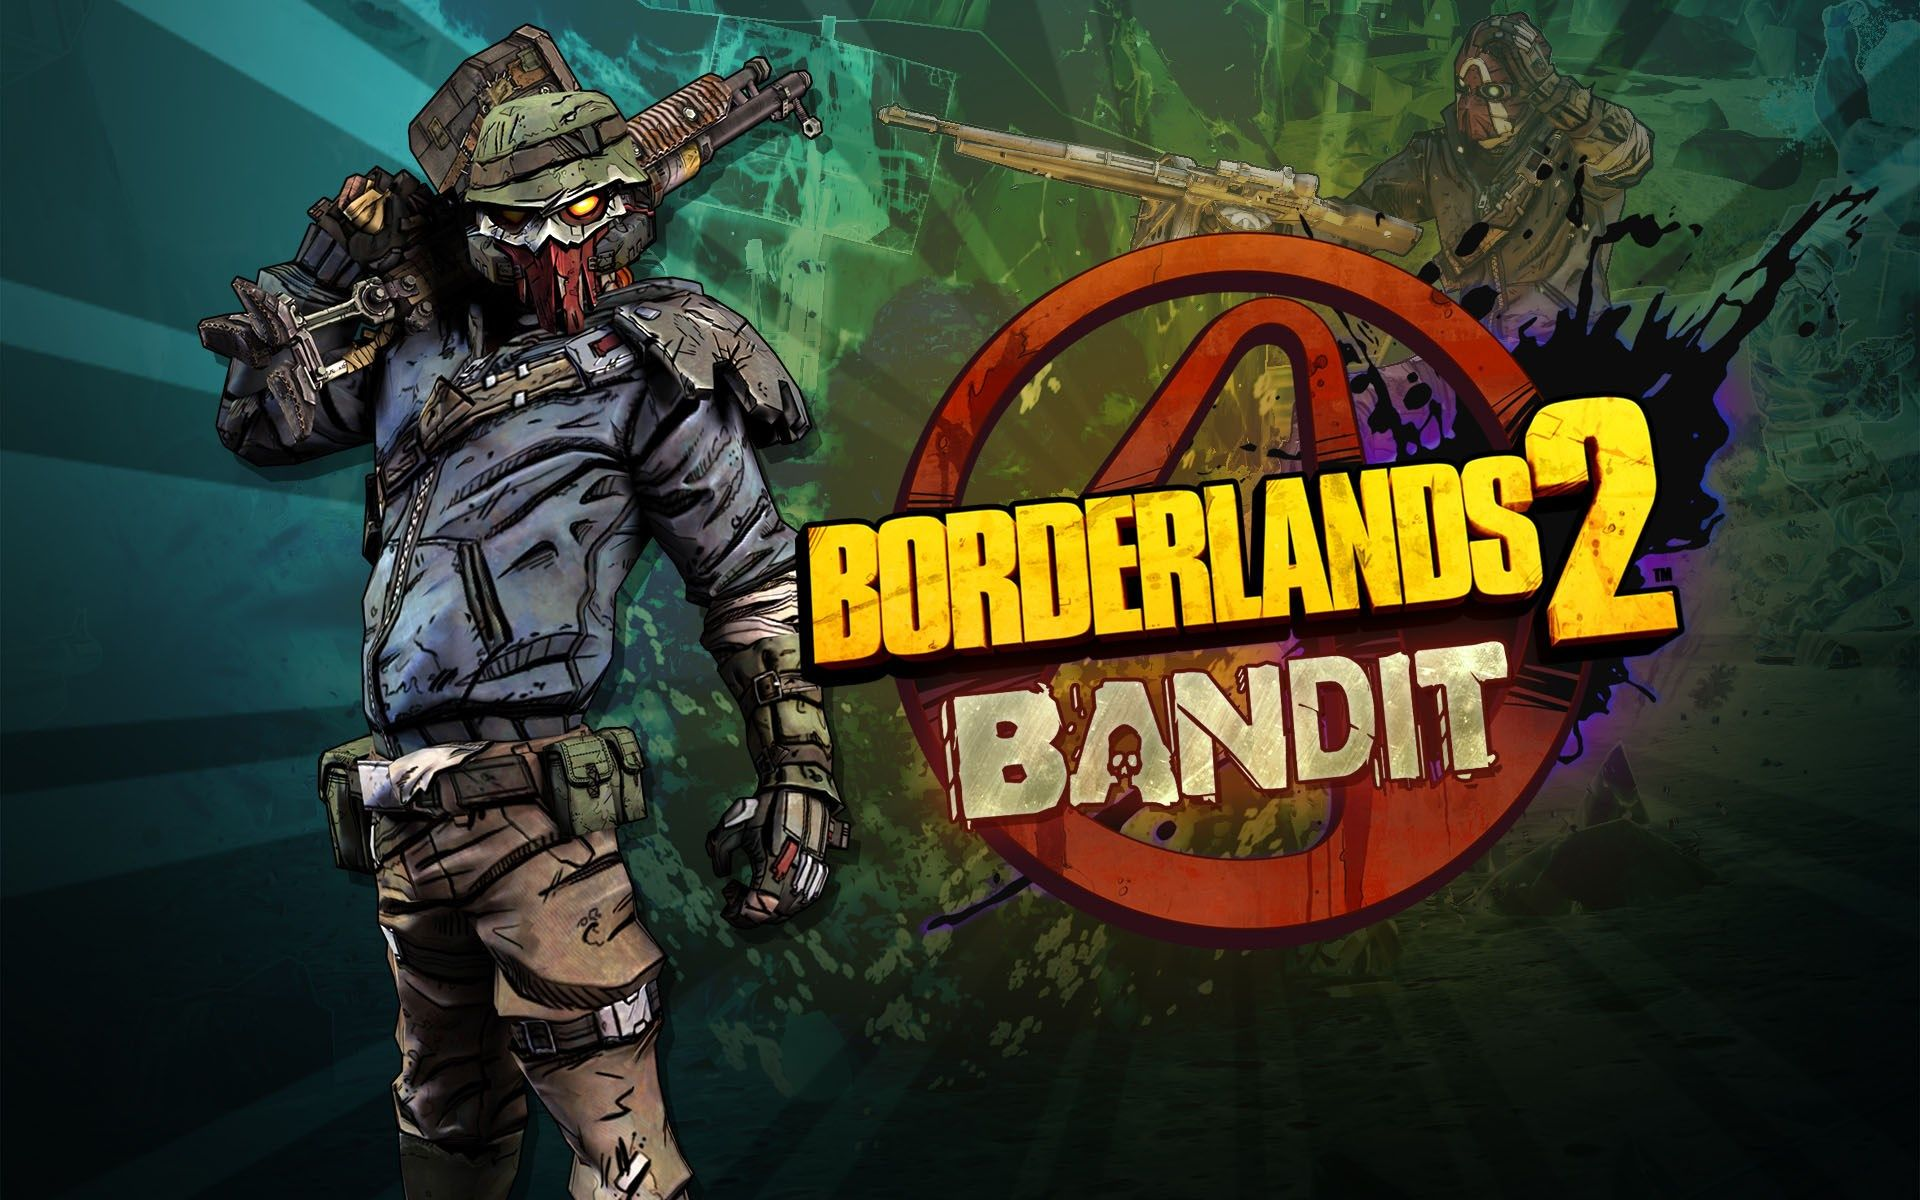 1920x1200 borderlands 2 game wallpaper | wallpapers and backgronds